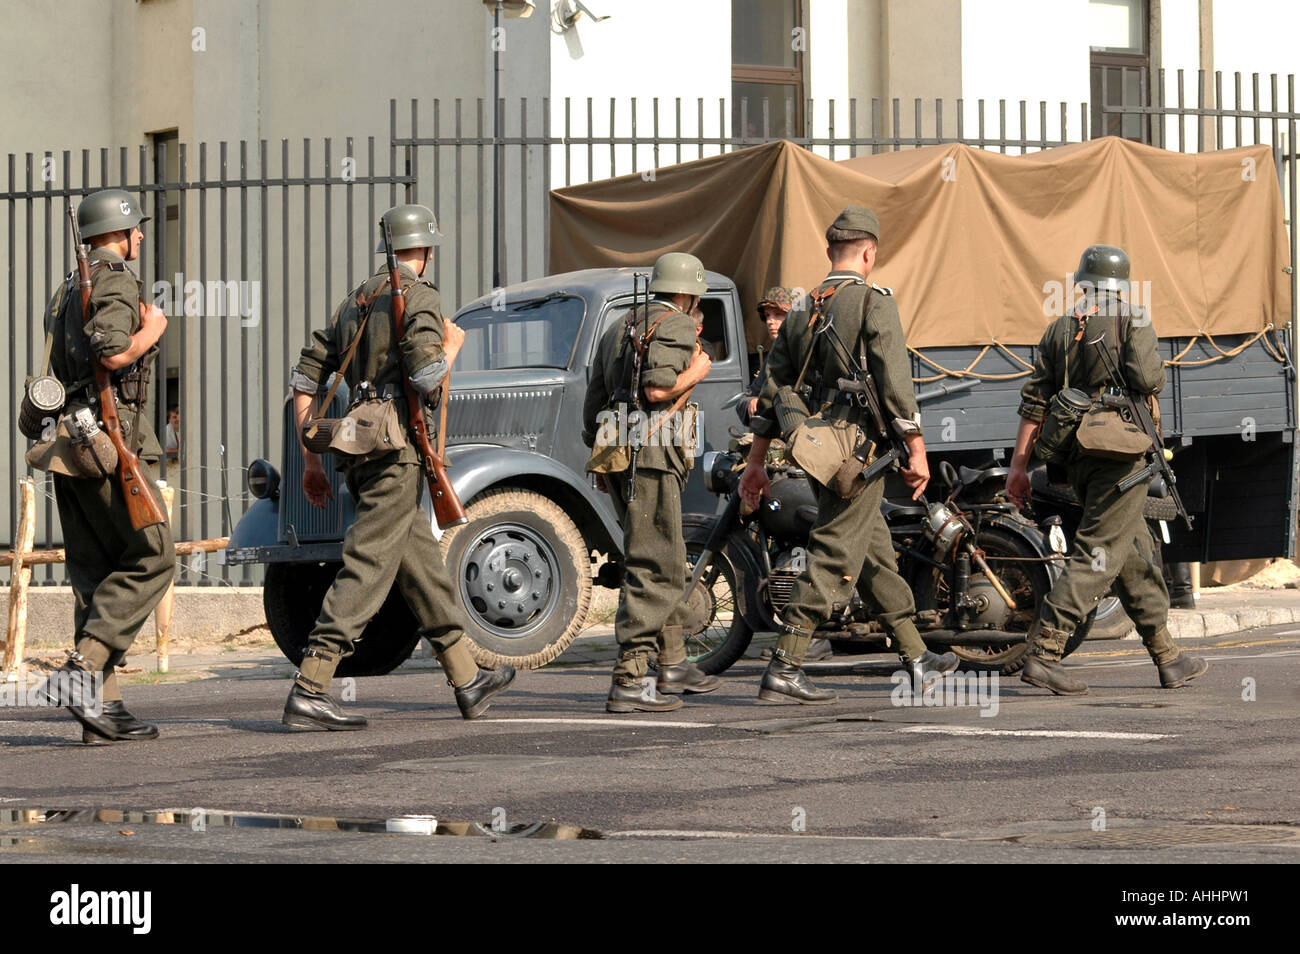 Historical Reenactment Of Warsaw Uprising In 1944 During Ii World Stock Photo Alamy